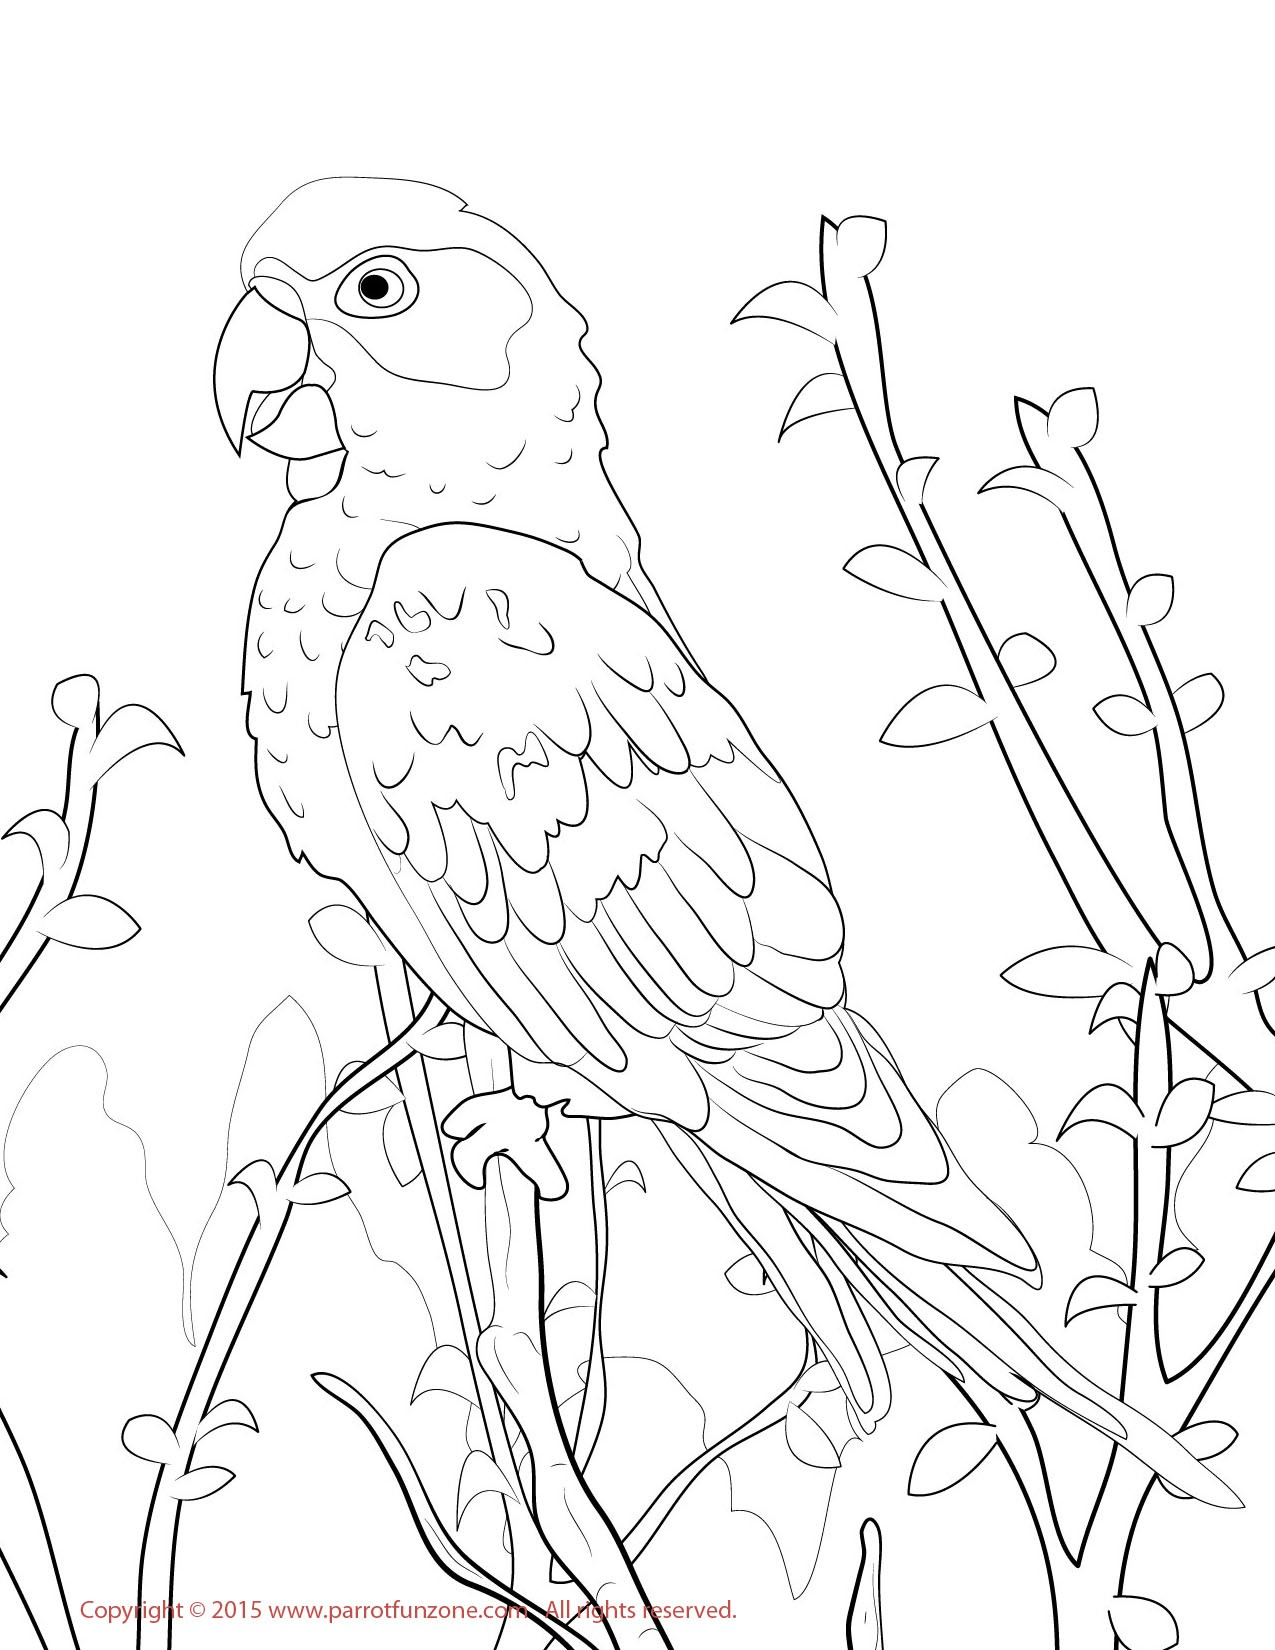 Lovebird Drawing at GetDrawings.com | Free for personal use Lovebird ...